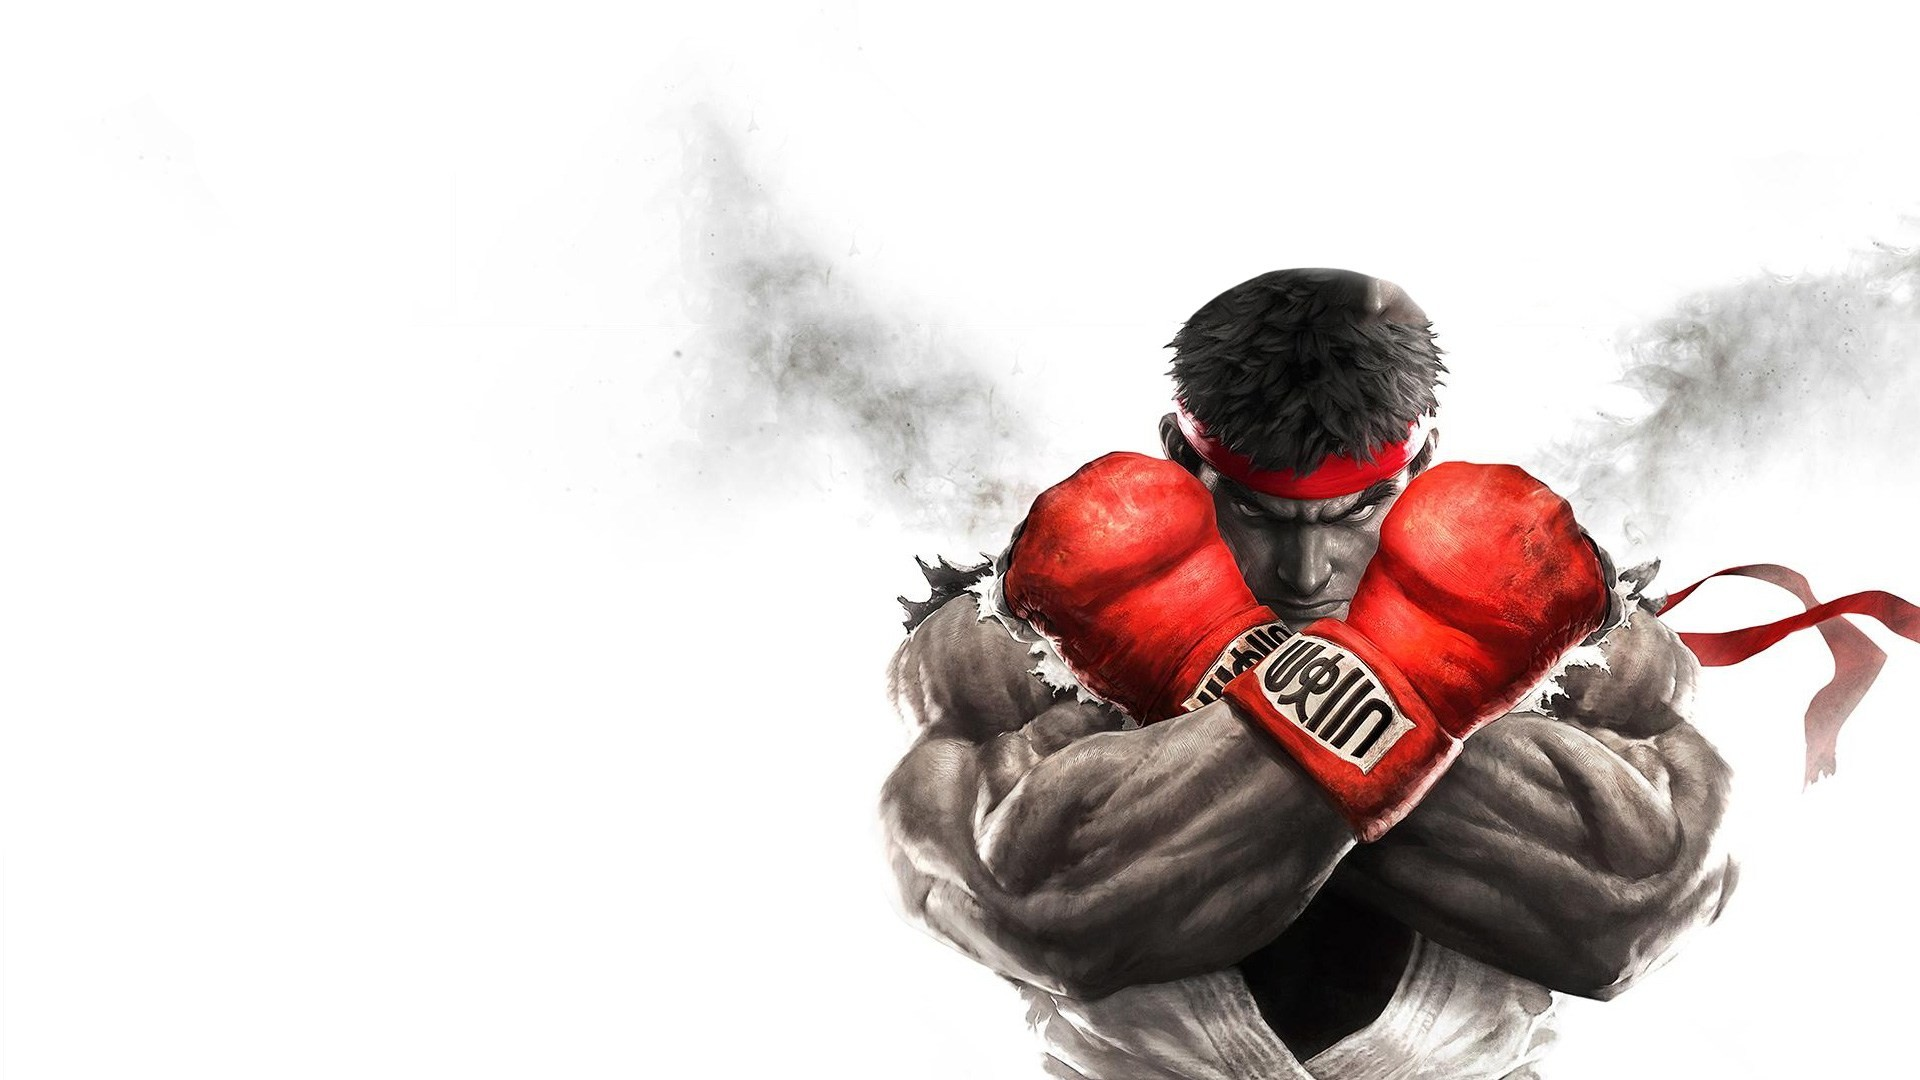 Street Fighter V. Classic Ryu pose for our custom PS4 wallpaper today. Best  use the darken top with this one.